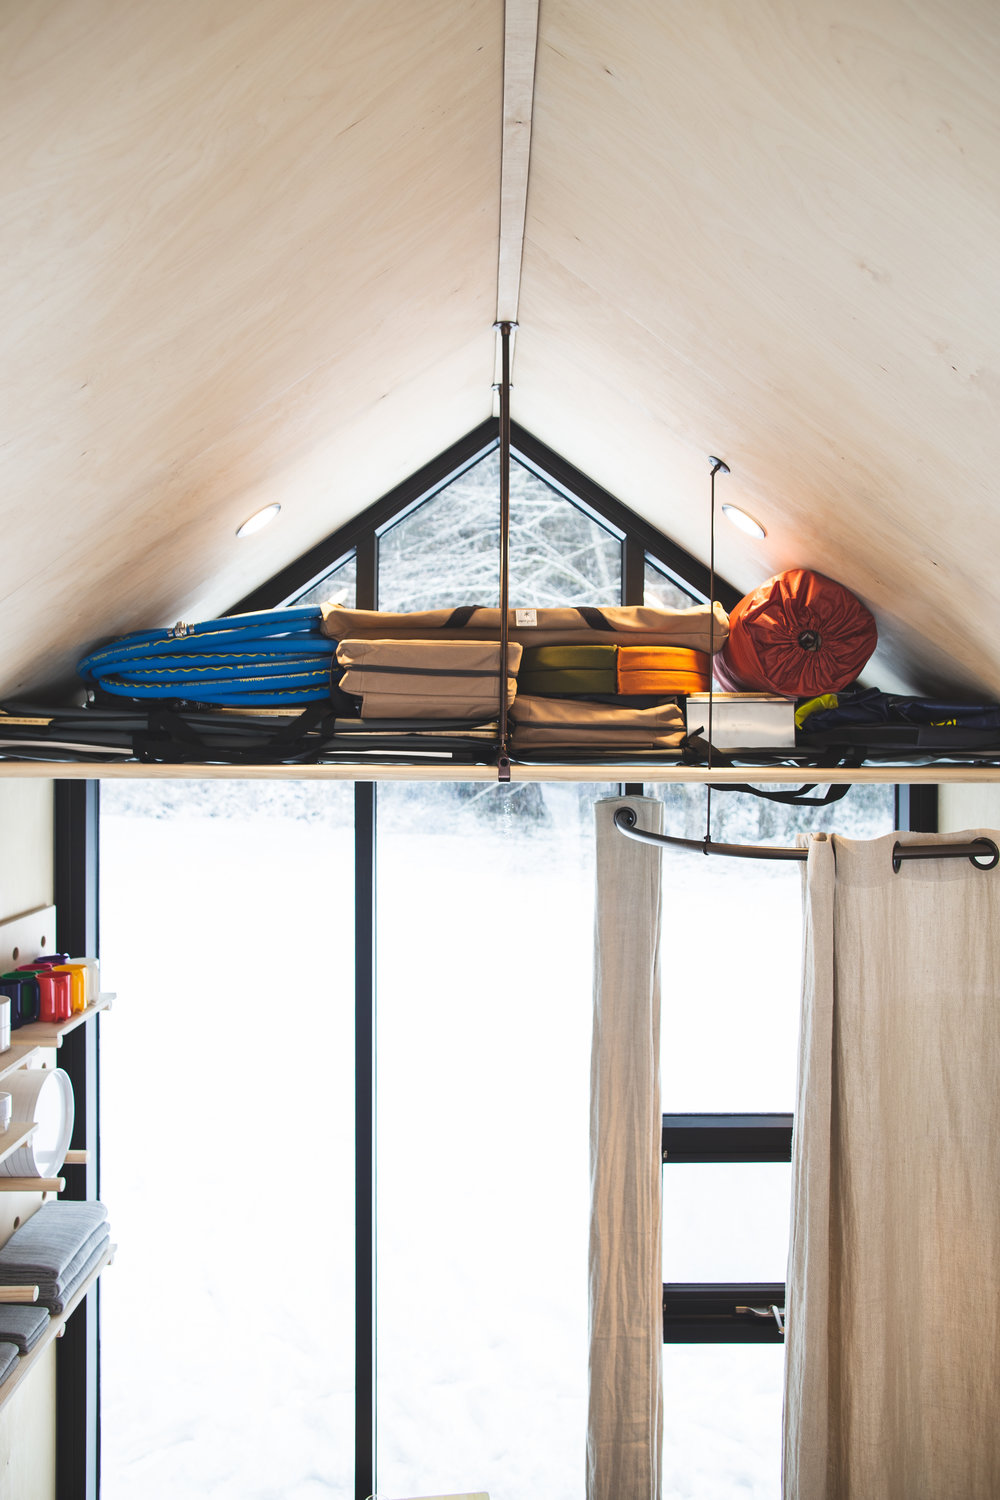 Stephen built the loft himself to hold his camping gear.